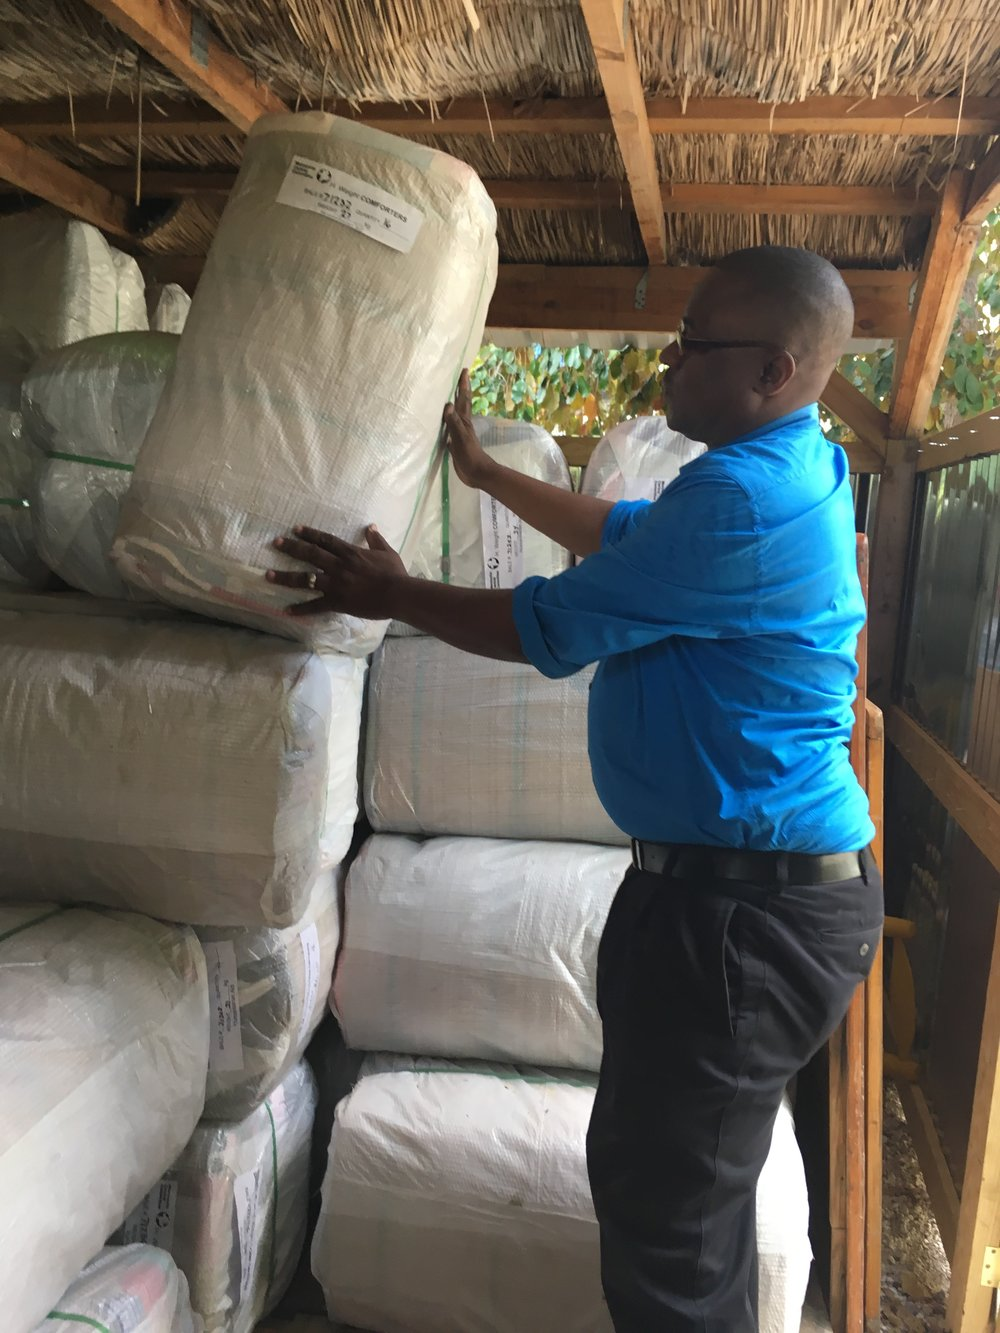 Pictured above, Herve Alcinna loading material aid in MCC Haiti storage facility on office grounds in preparation for Hurricane Irma.As a result of the significant earthquake response, MCC in Haiti began prepositioning material aid in Haiti rather than waiting to place orders after disasters in order to be able to respond more quickly.